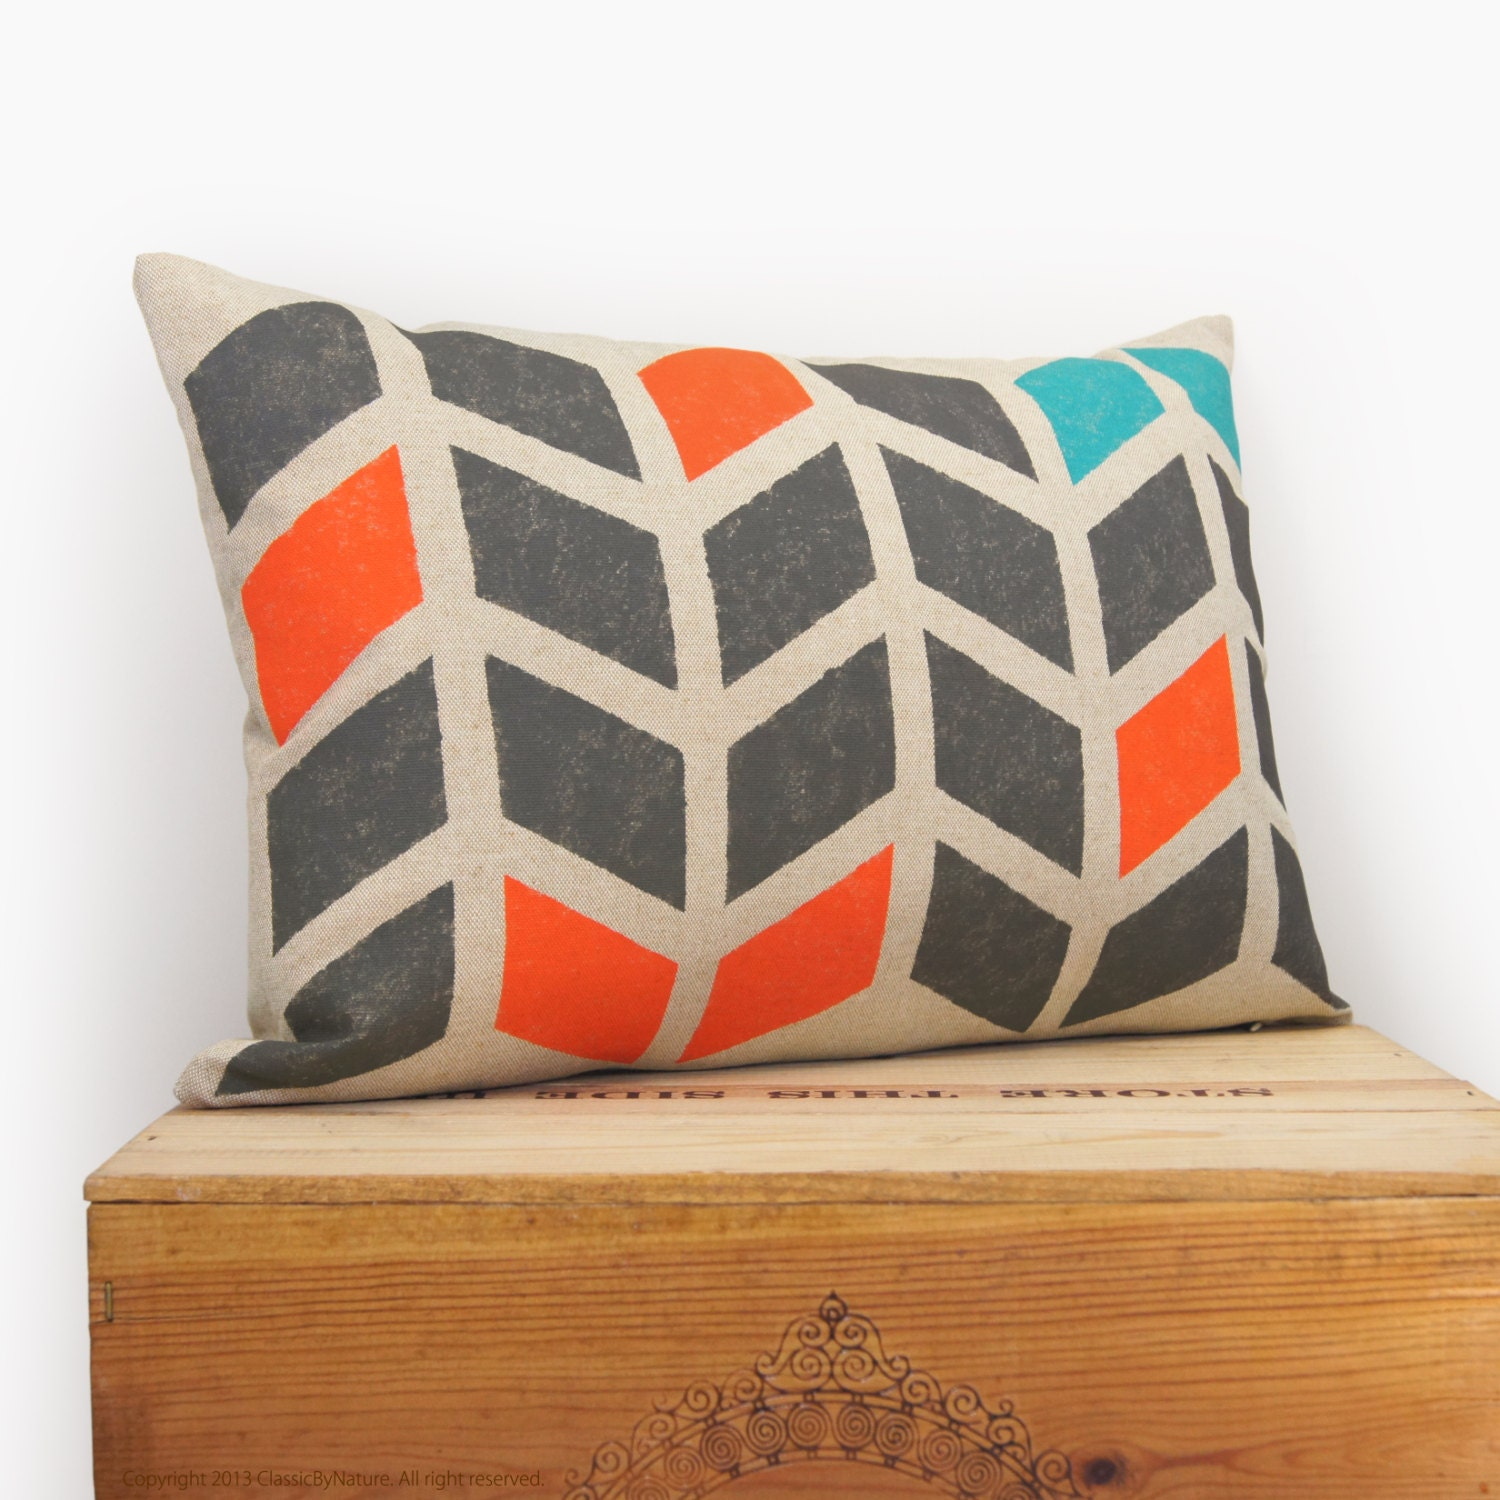 Chevron pillow - Hand printed decorative pillow with graphic arrows pattern in charcoal, orange and teal on beige canvas - 12x18 pillow case - ClassicByNature